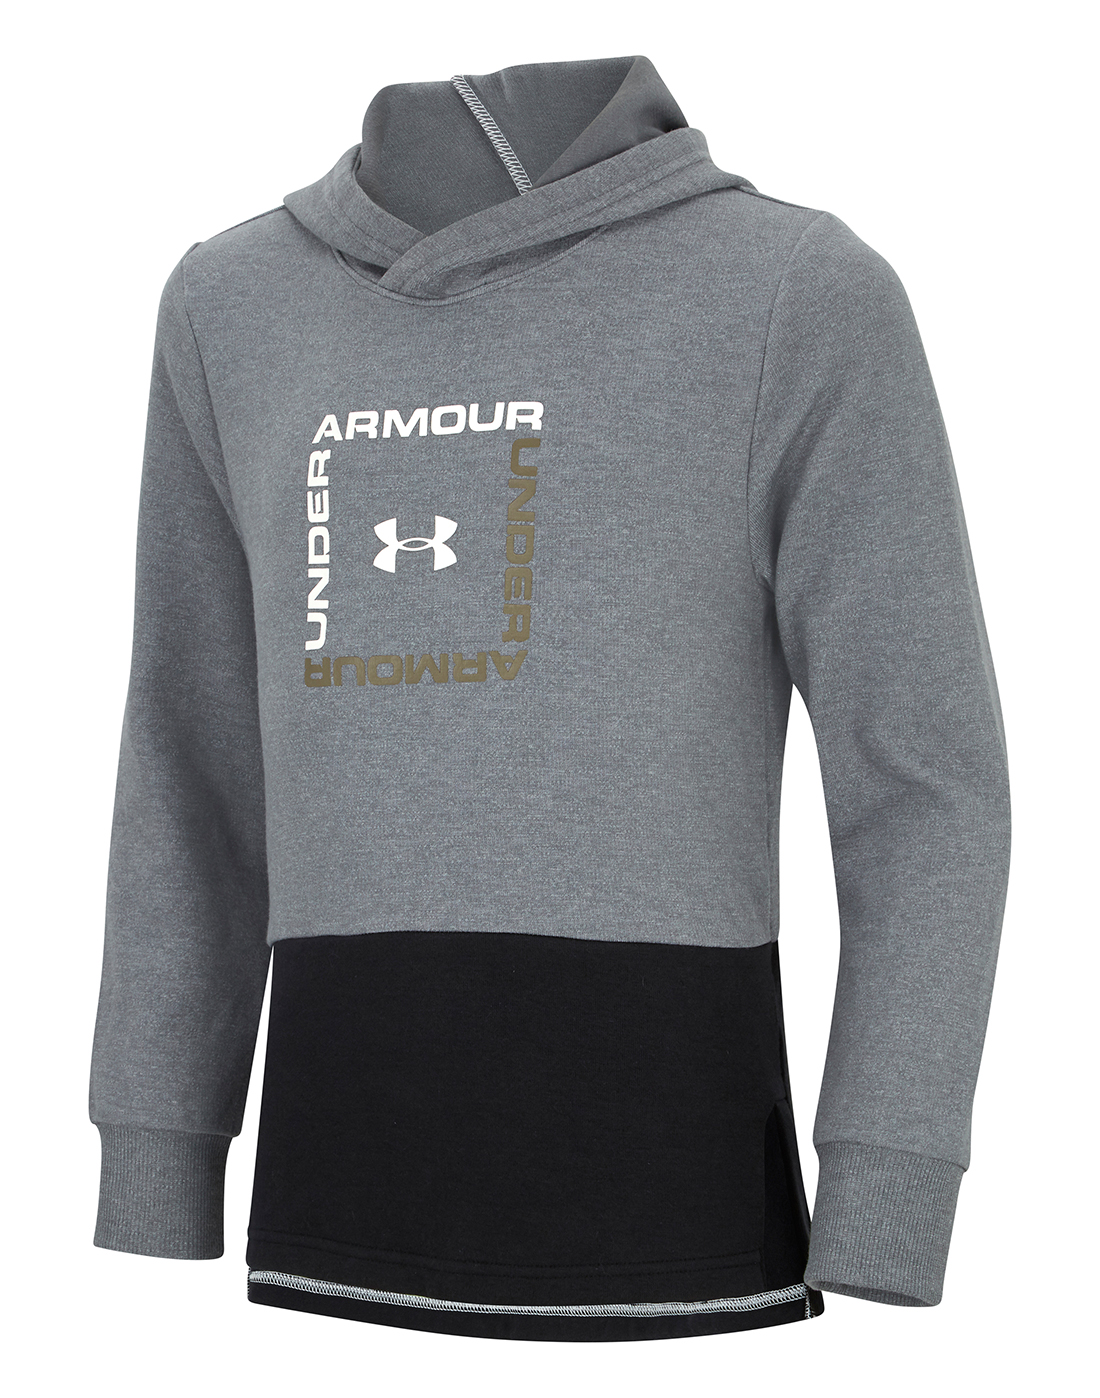 34a12d2c7249 Boy s Grey Under Armour Double Knit Hoodie